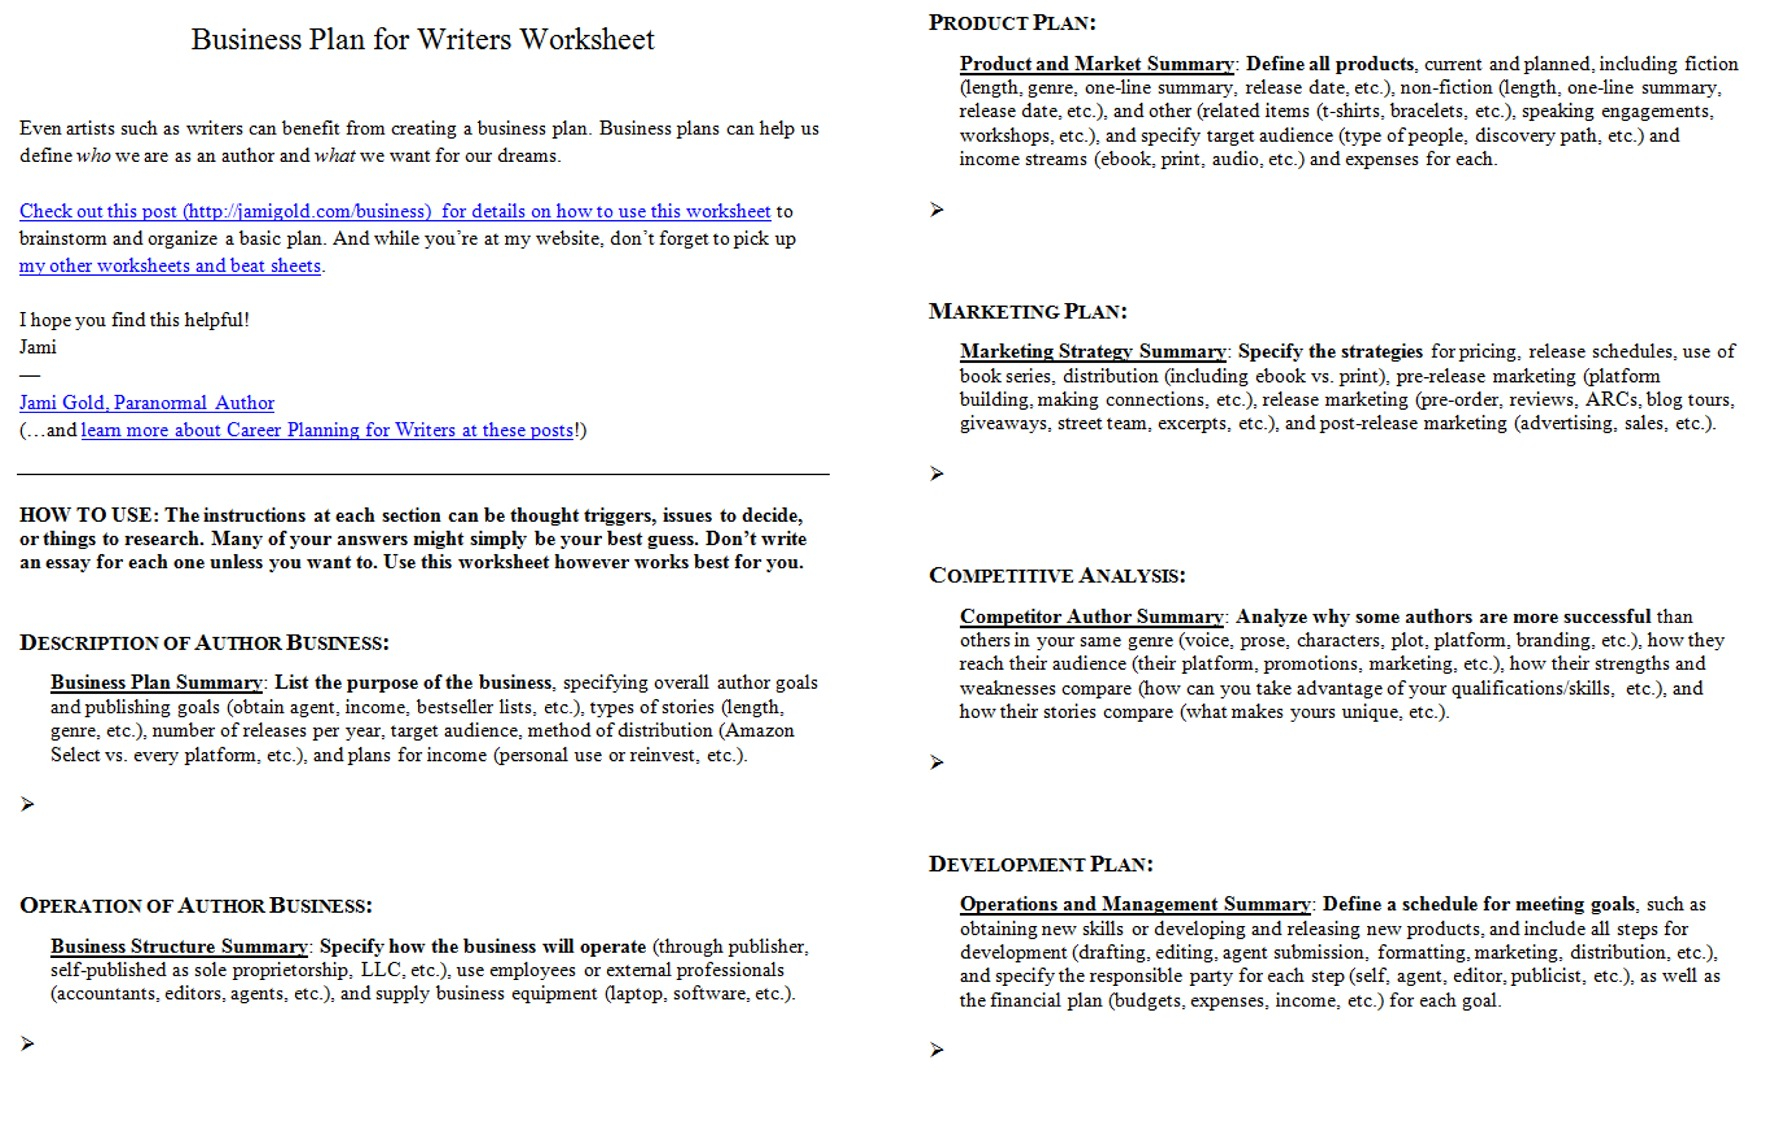 Weirdmailus  Prepossessing Worksheets For Writers  Jami Gold Paranormal Author With Lovable Screen Shot Of Both Pages Of The Business Plan For Writers Worksheet With Amazing Alphabet Handwriting Worksheets Printable Also Trade First Subtraction Worksheet In Addition Letter K Tracing Worksheets And Primary  Worksheets As Well As First Person Worksheets Additionally Powerful Verbs Worksheet From Jamigoldcom With Weirdmailus  Lovable Worksheets For Writers  Jami Gold Paranormal Author With Amazing Screen Shot Of Both Pages Of The Business Plan For Writers Worksheet And Prepossessing Alphabet Handwriting Worksheets Printable Also Trade First Subtraction Worksheet In Addition Letter K Tracing Worksheets From Jamigoldcom